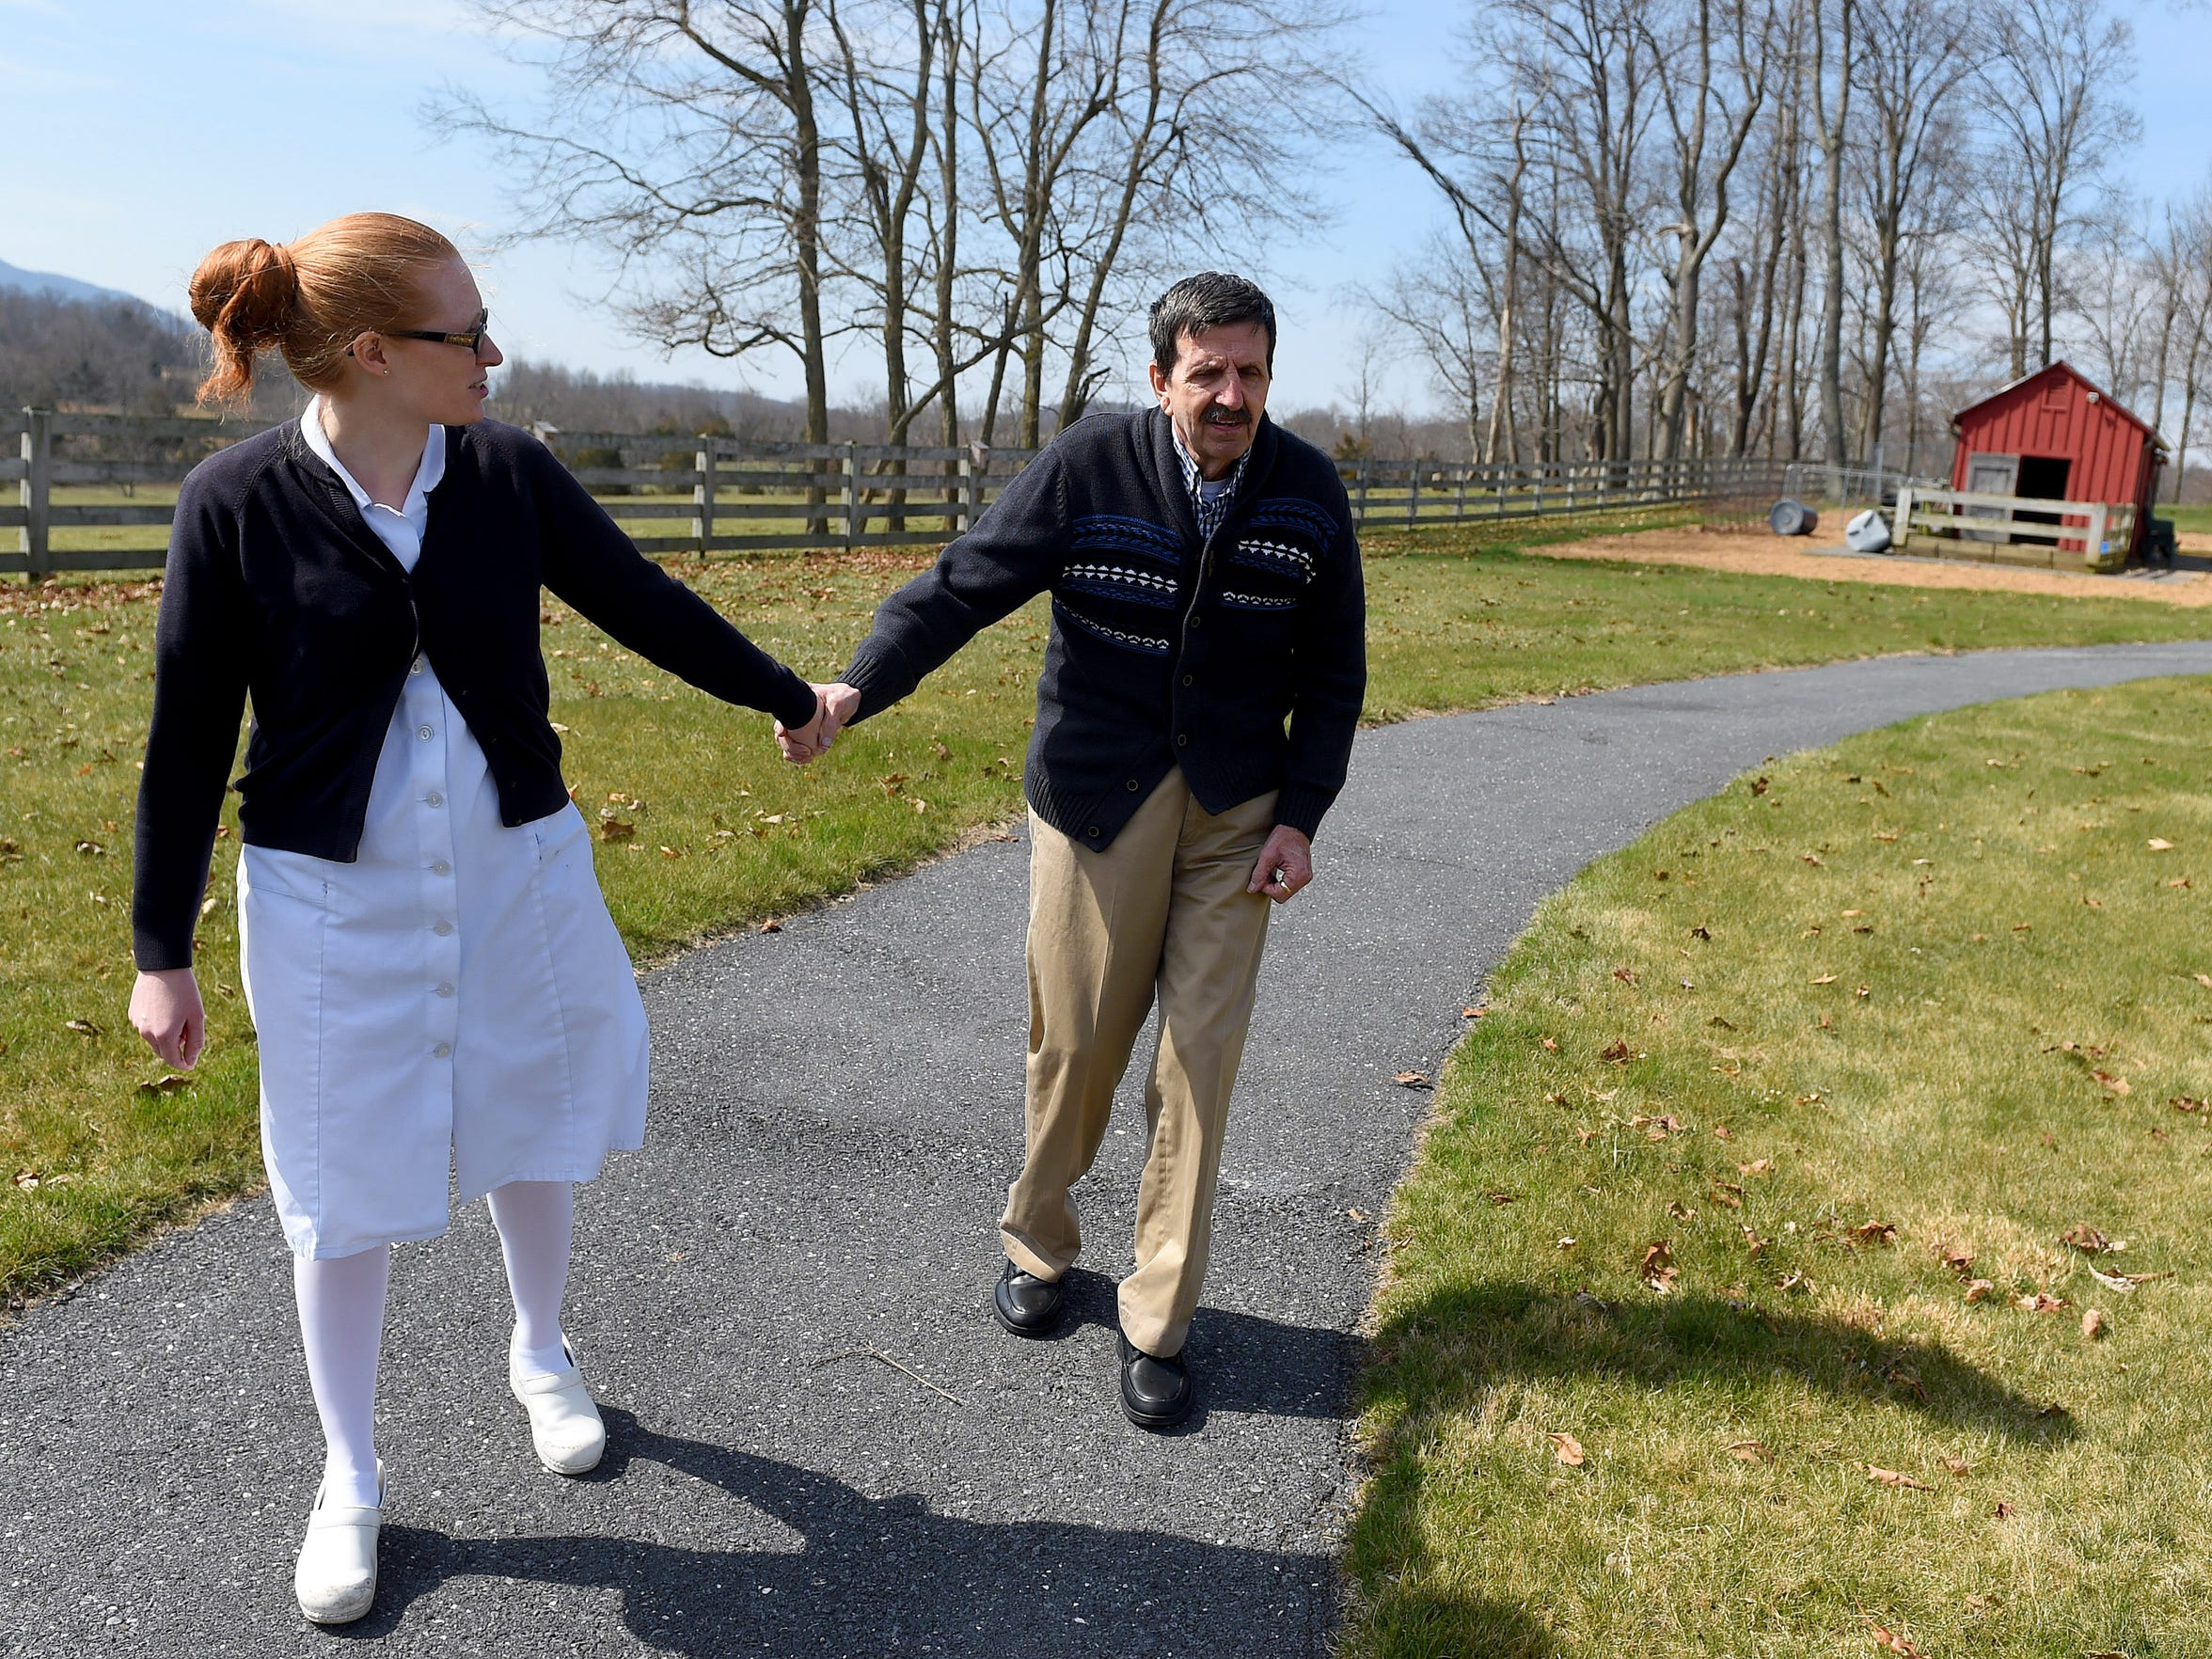 Tim Wood enjoys a walk outside. He walks with Sarah